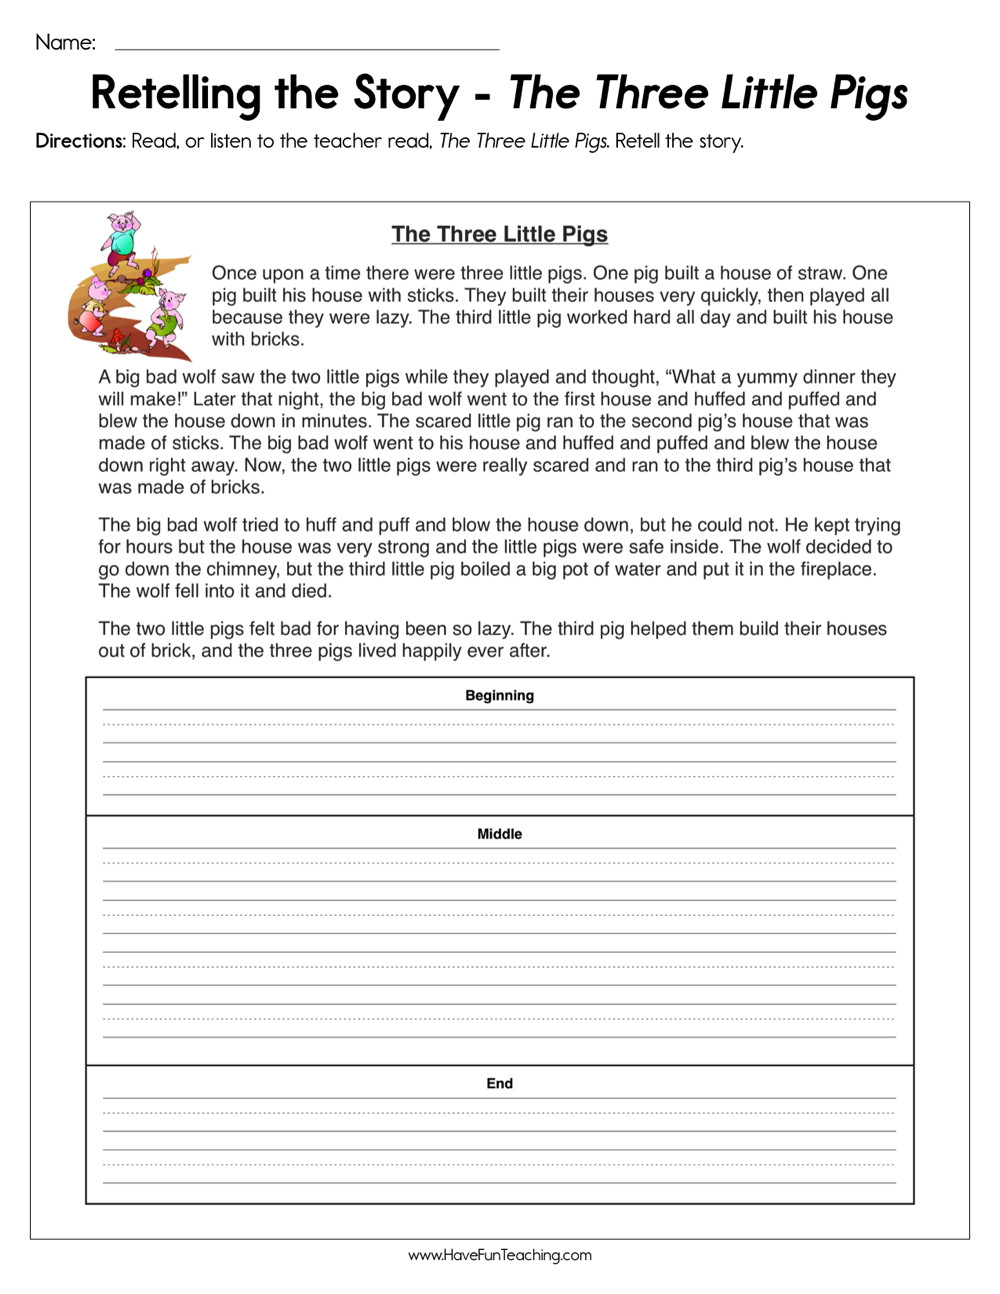 Beginning Middle End Worksheet Retelling the Story the Three Little Pigs Worksheet